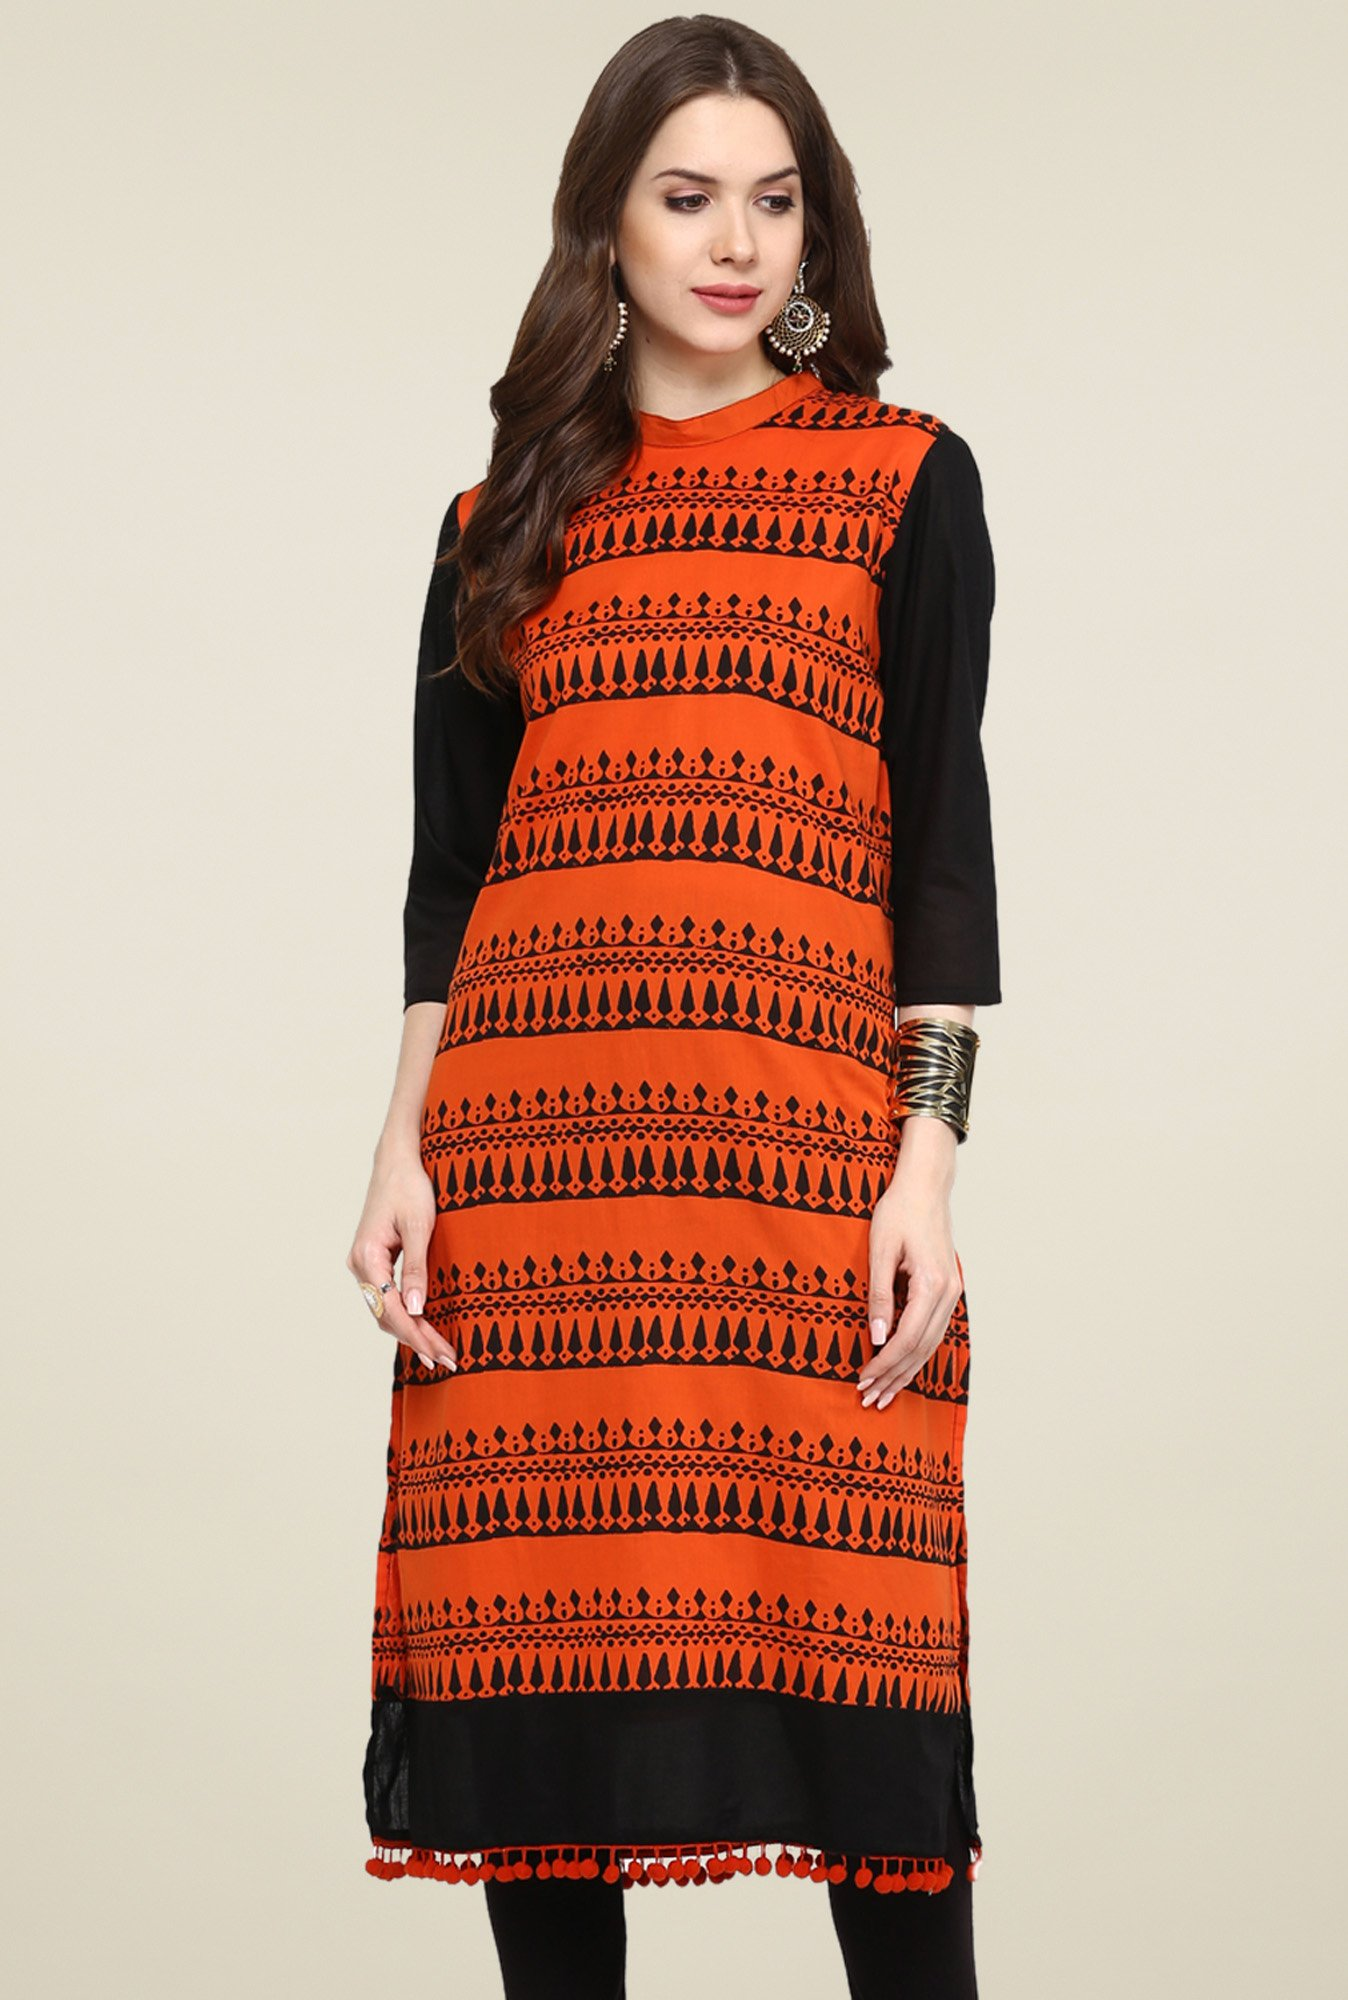 Pannkh Orange & Black 3/4th Sleeves Printed Kurti